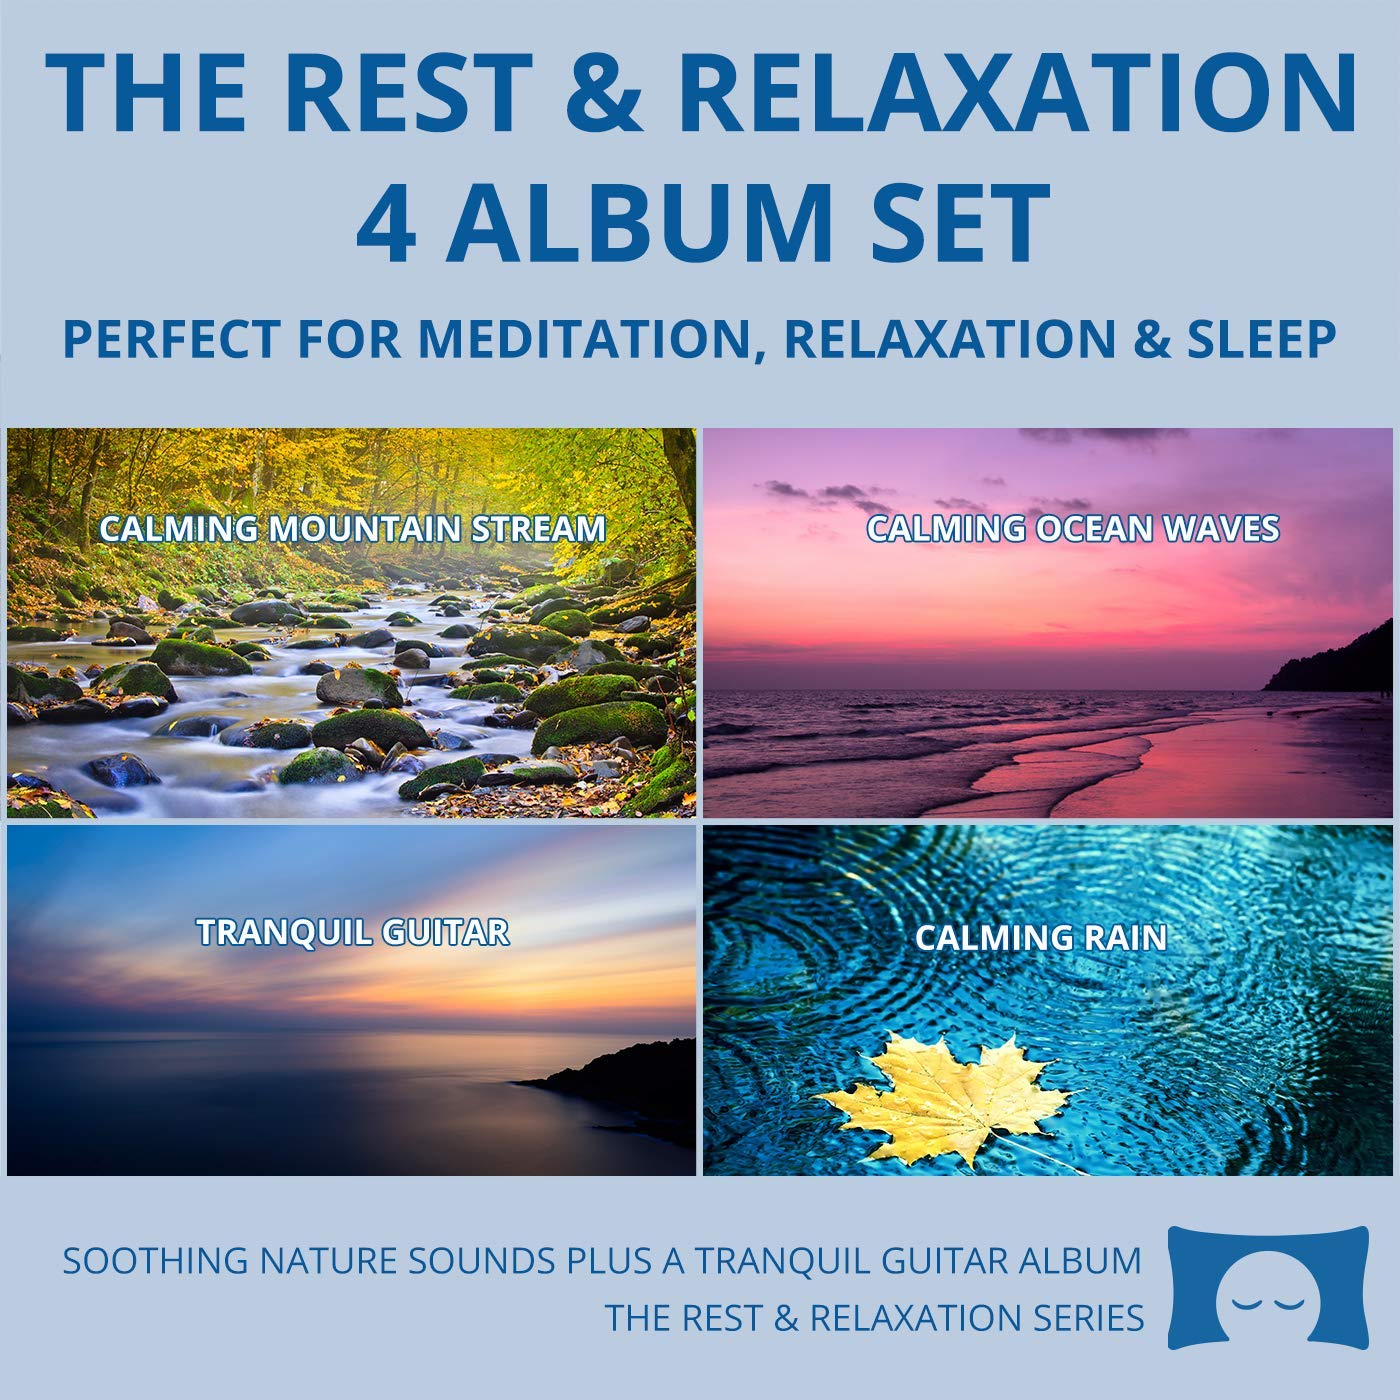 Relaxing Nature Sounds 4 CD Set - for Meditation, Relaxation and Sleep - Nature's Perfect White Noise